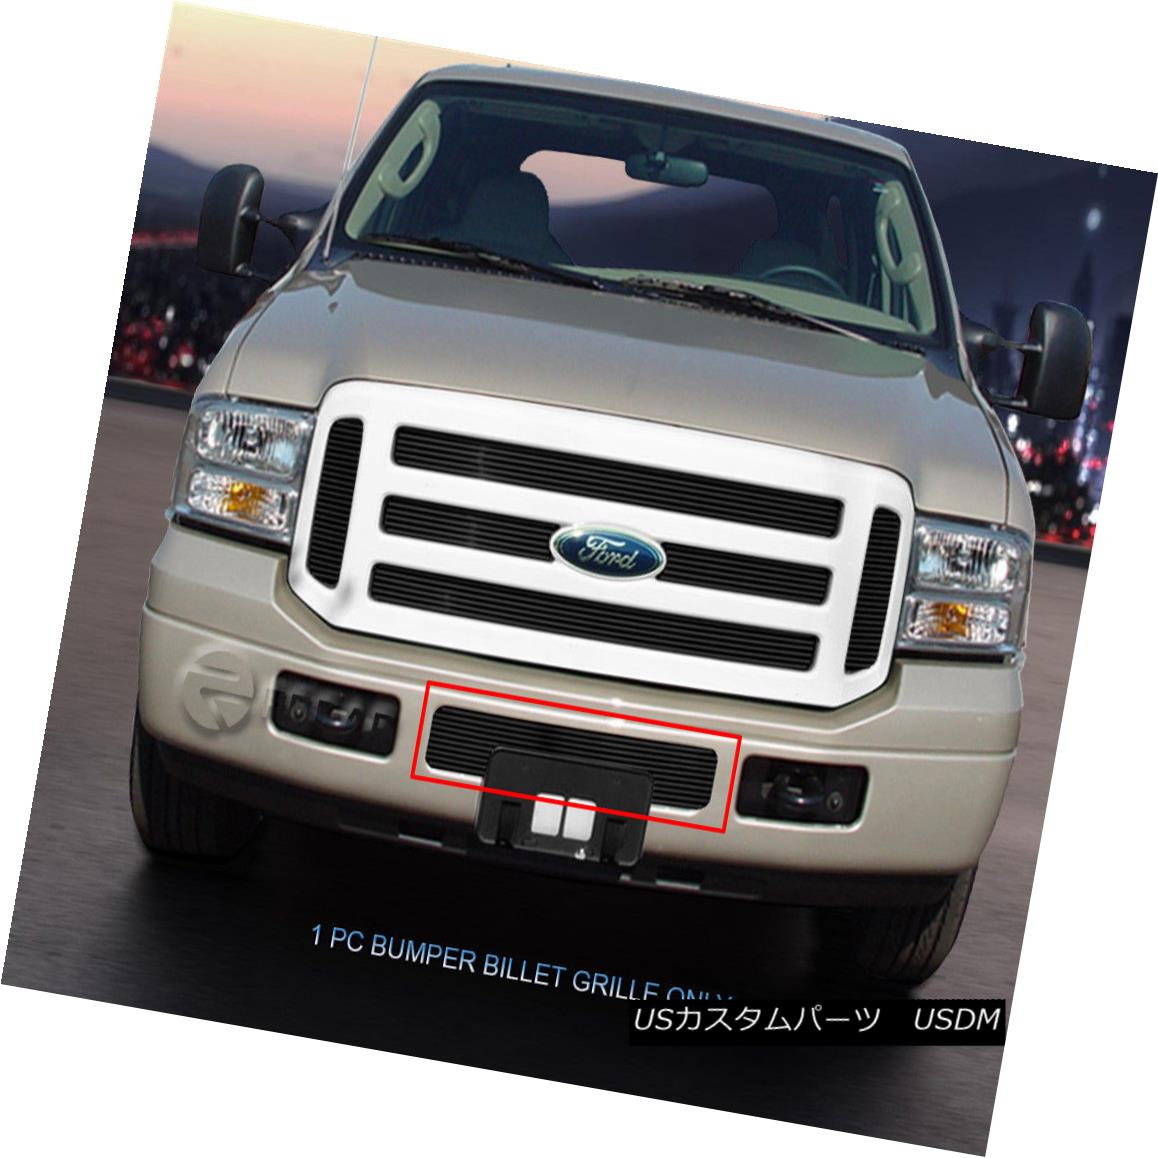 グリル 05-07 Ford F-250/F-350/F-450/F-550/Excursion Black Bumper Billet Grille Fedar 05-07 Ford F-250 / F-350 / F-450 / F-550 / Excu rsion Black Bumper Billet Grille Fedar